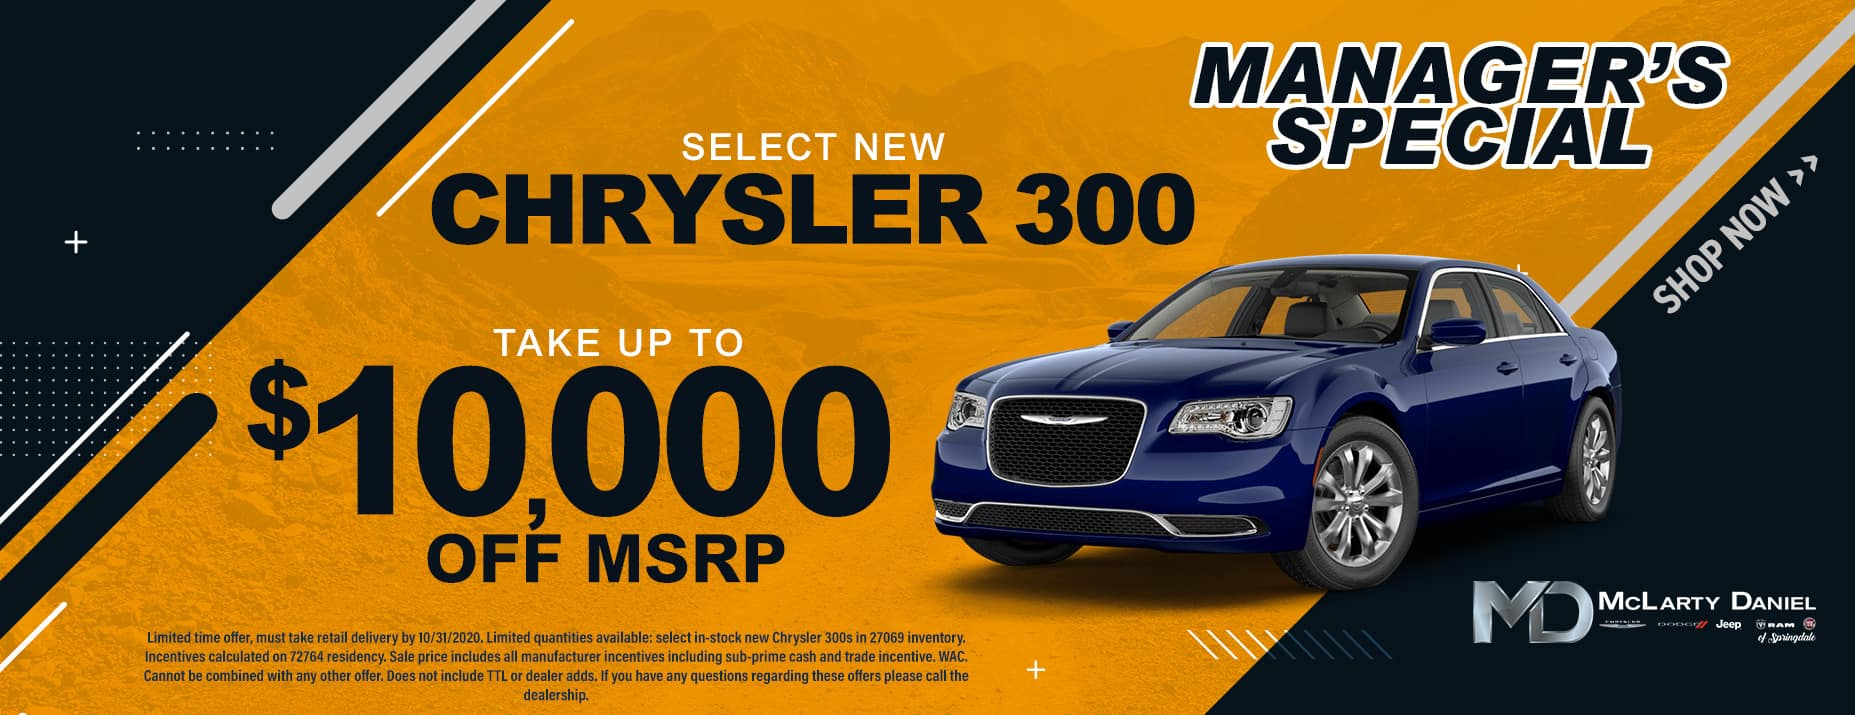 MANAGER'S SPECIAL: TAKE UP TO $10,000 OFF SELECT CHRYSLER 300!